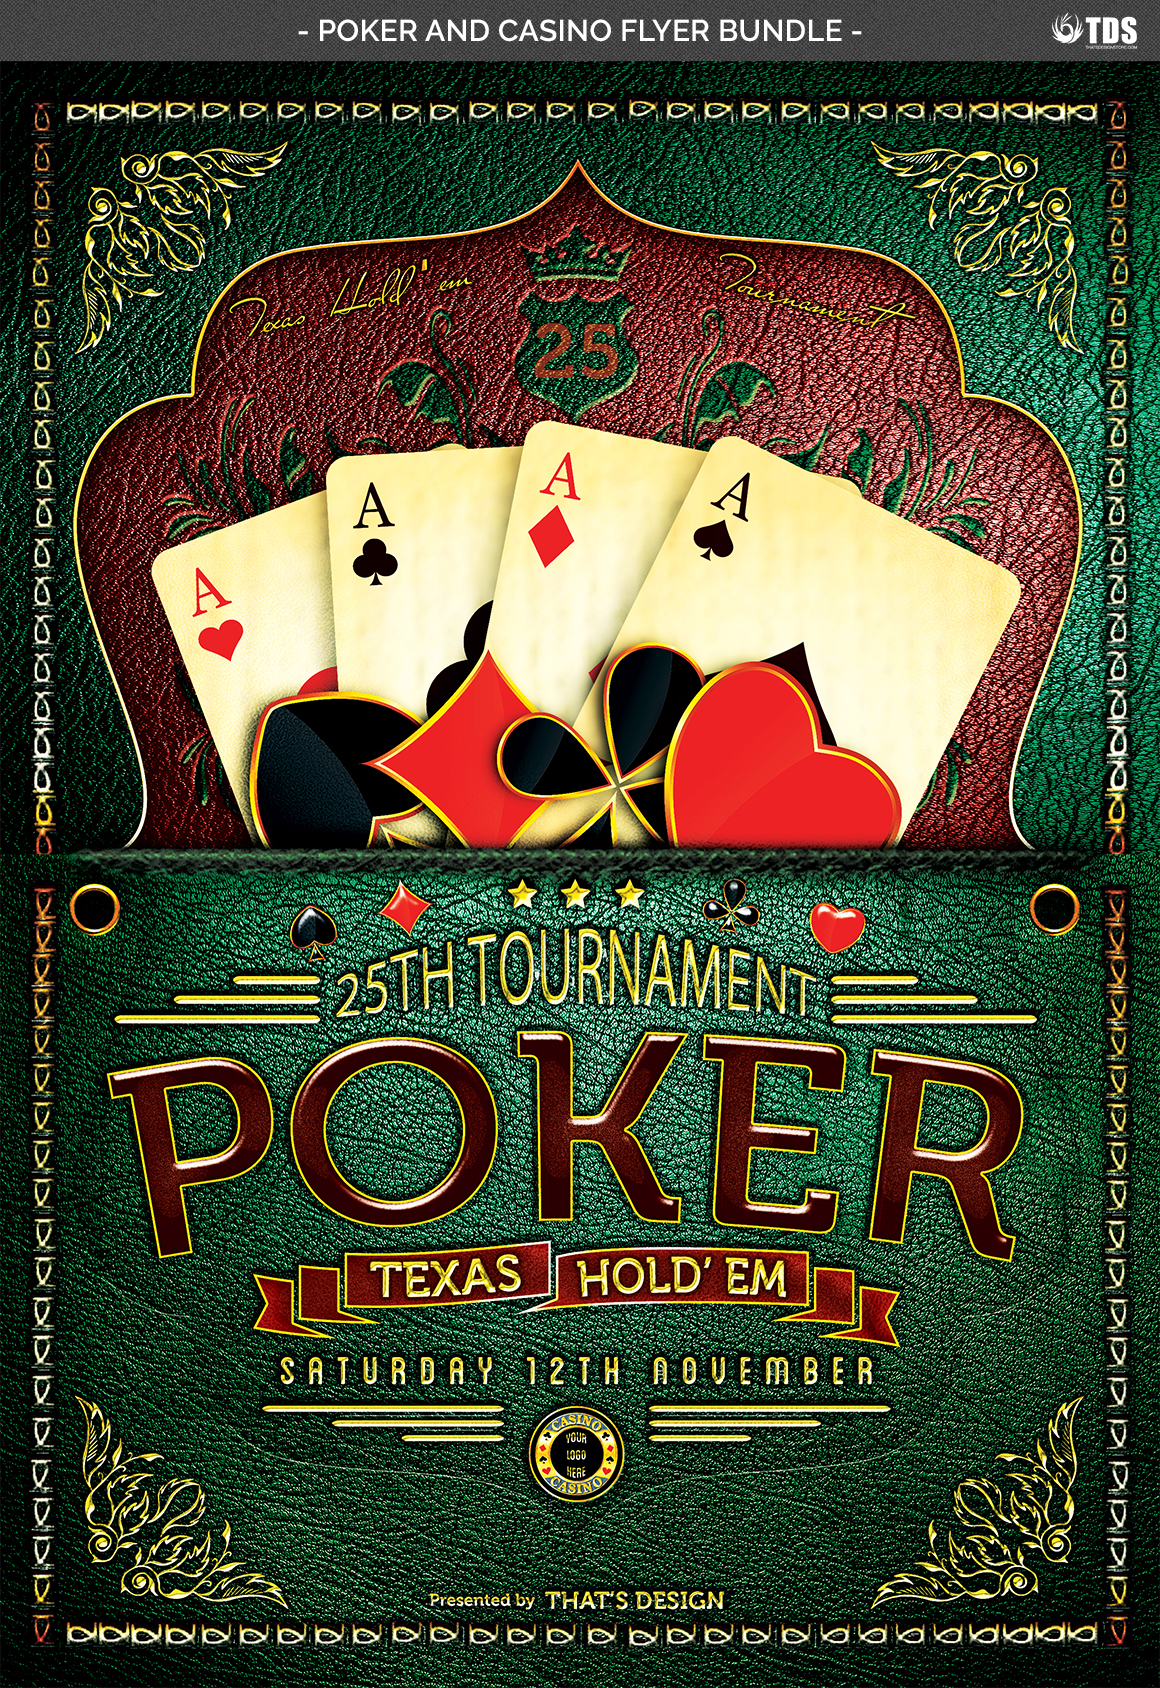 Poker and Casino Flyer Bundle example image 5